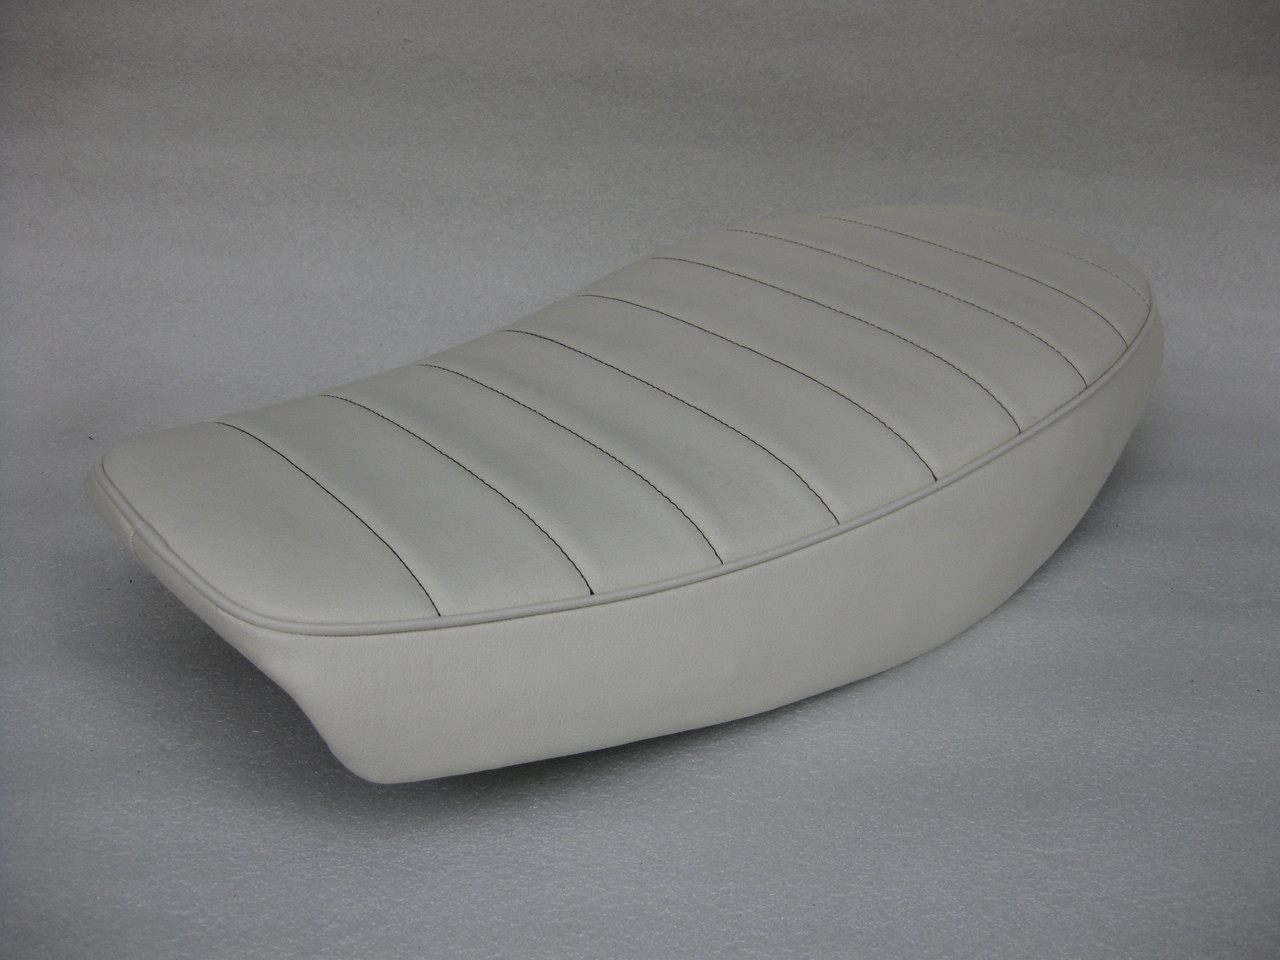 Cafe seat for Yamaha XS400 Special Powder coated Modified seat pan 1981 - 1983  #4372